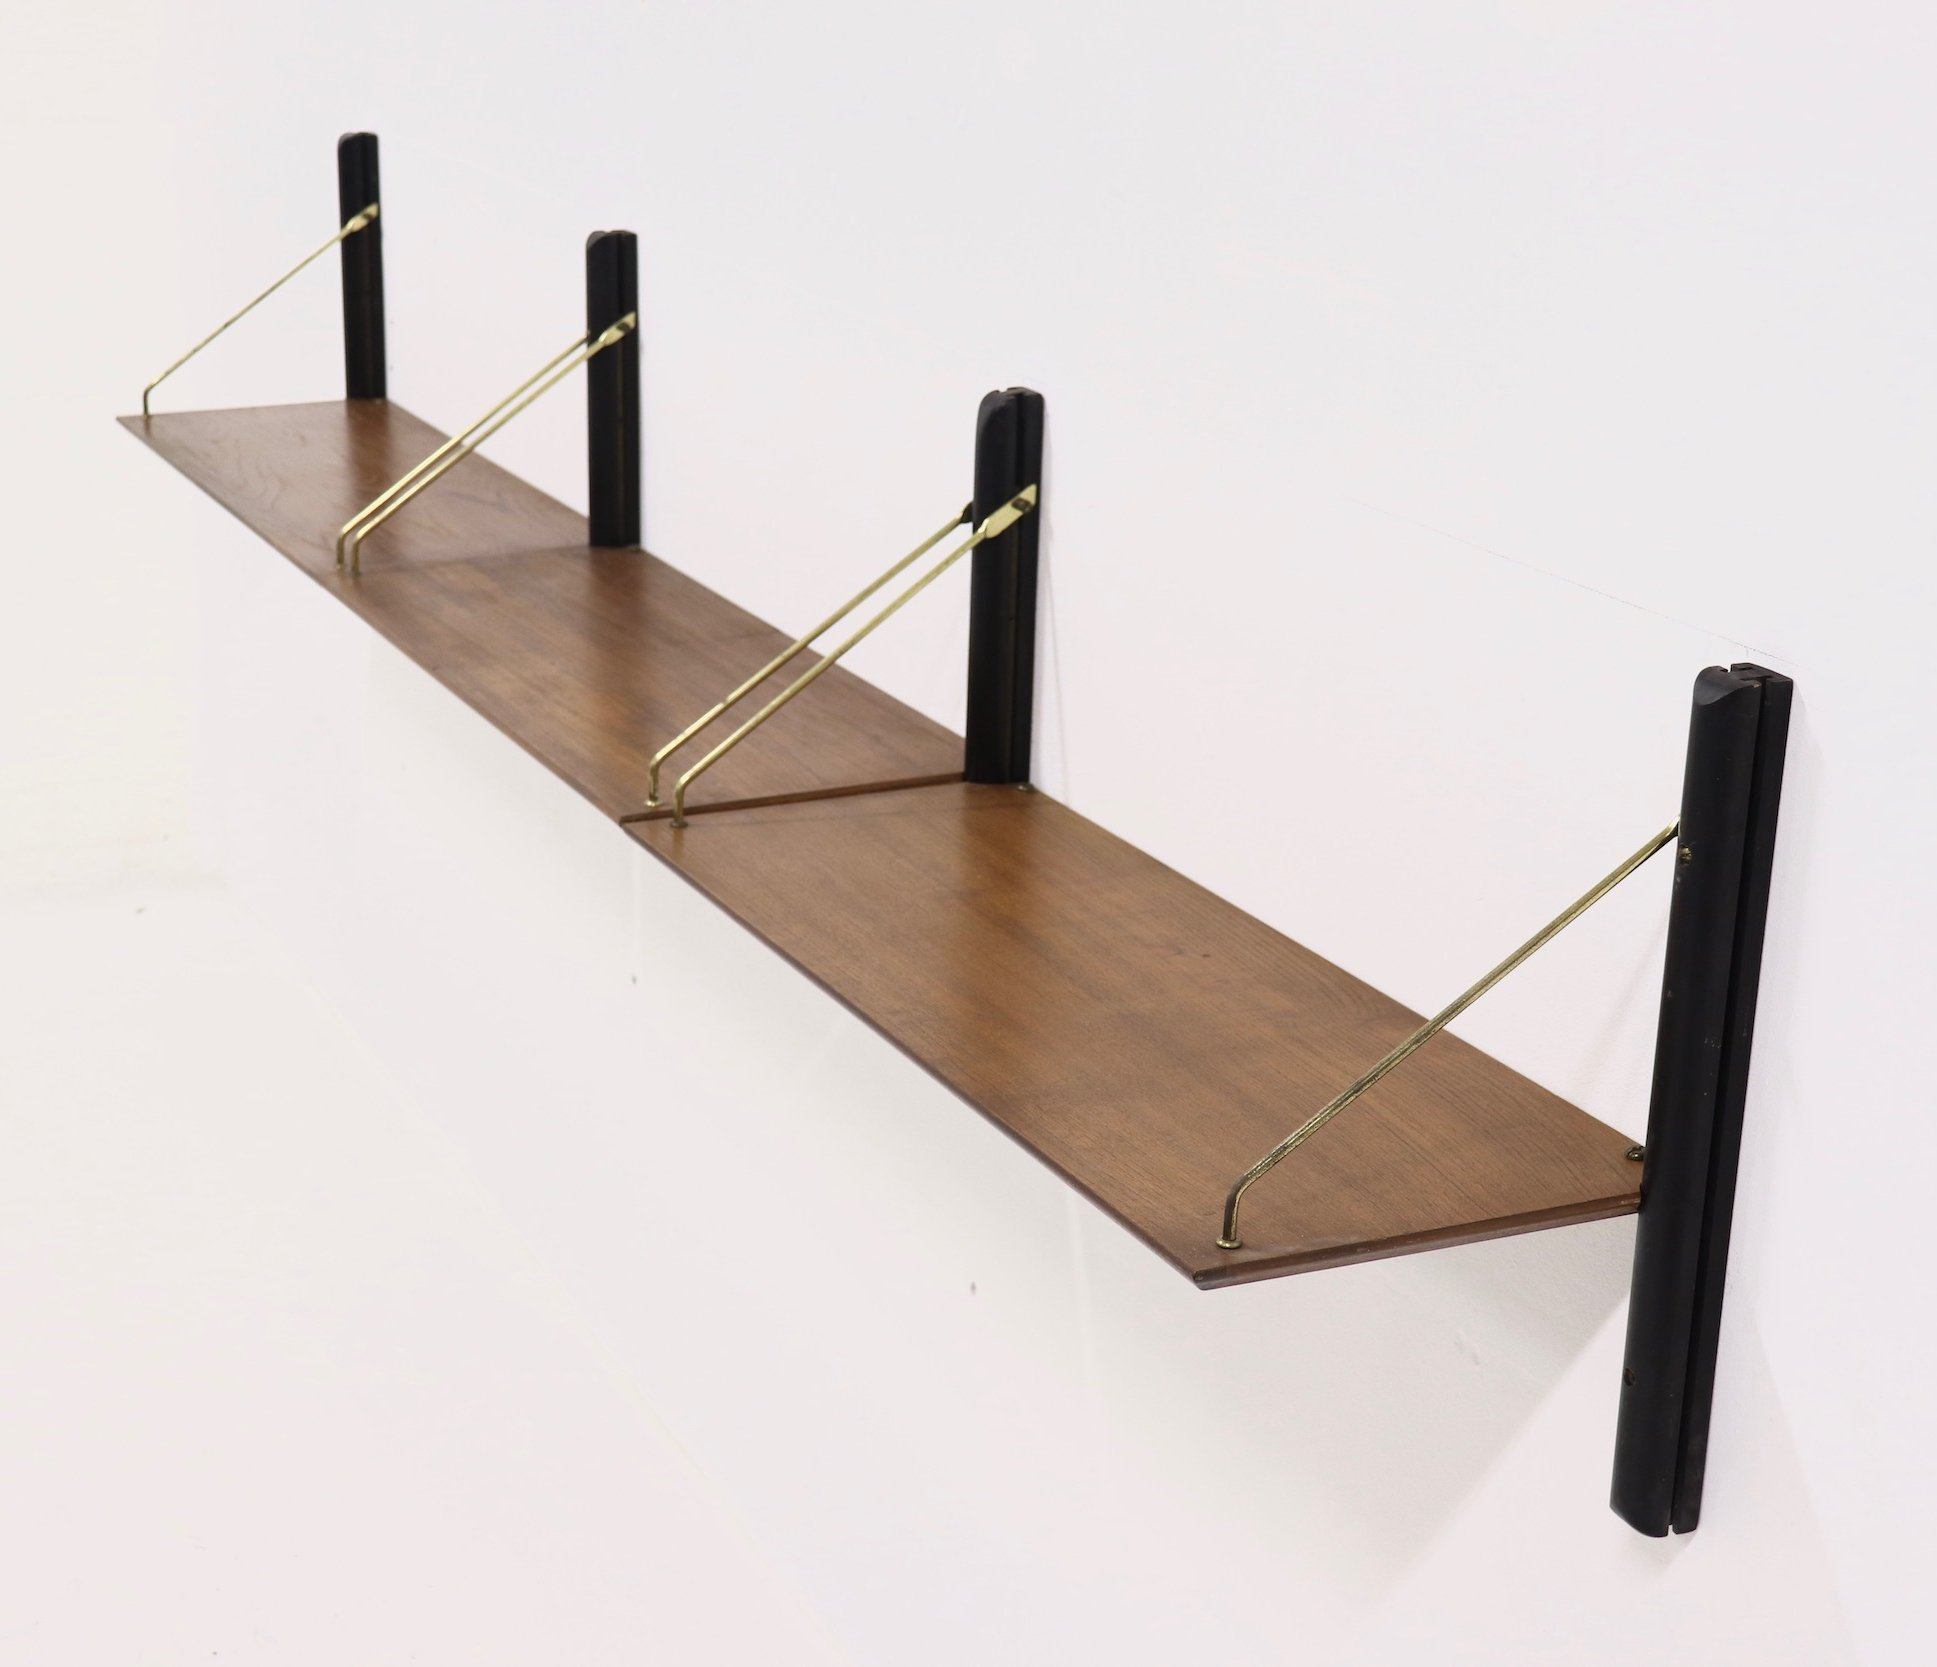 Rare Wall Mounted Shelving Unit By Louis Van Teeffelen For Webe 1950s